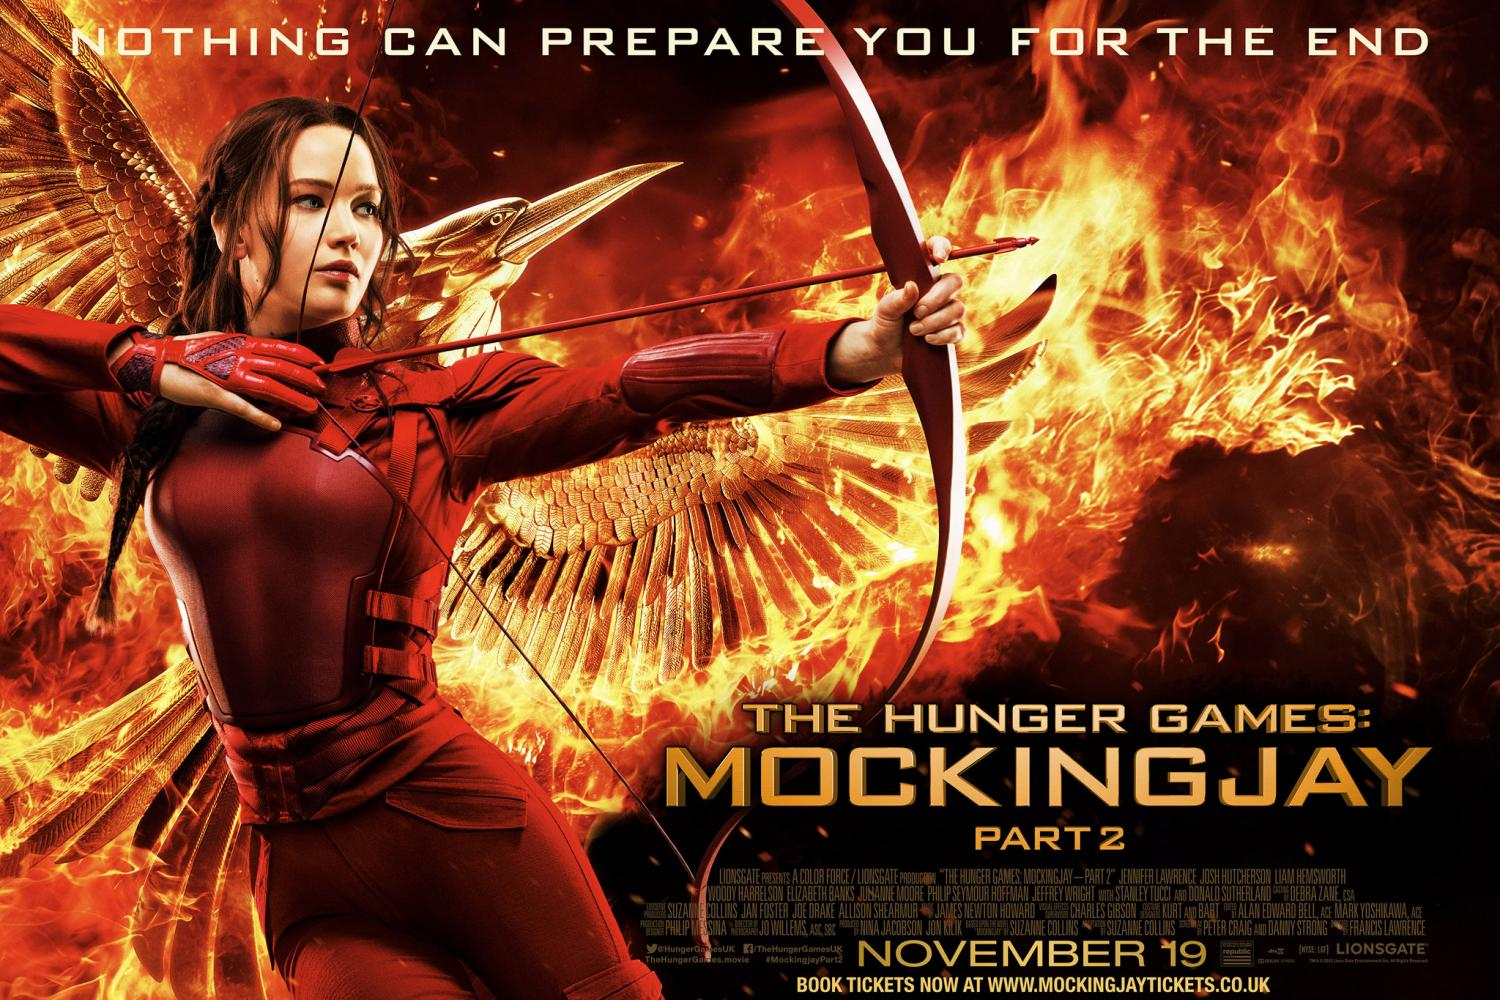 Hunger games: mockingjay part 2, the (2015) dread central.